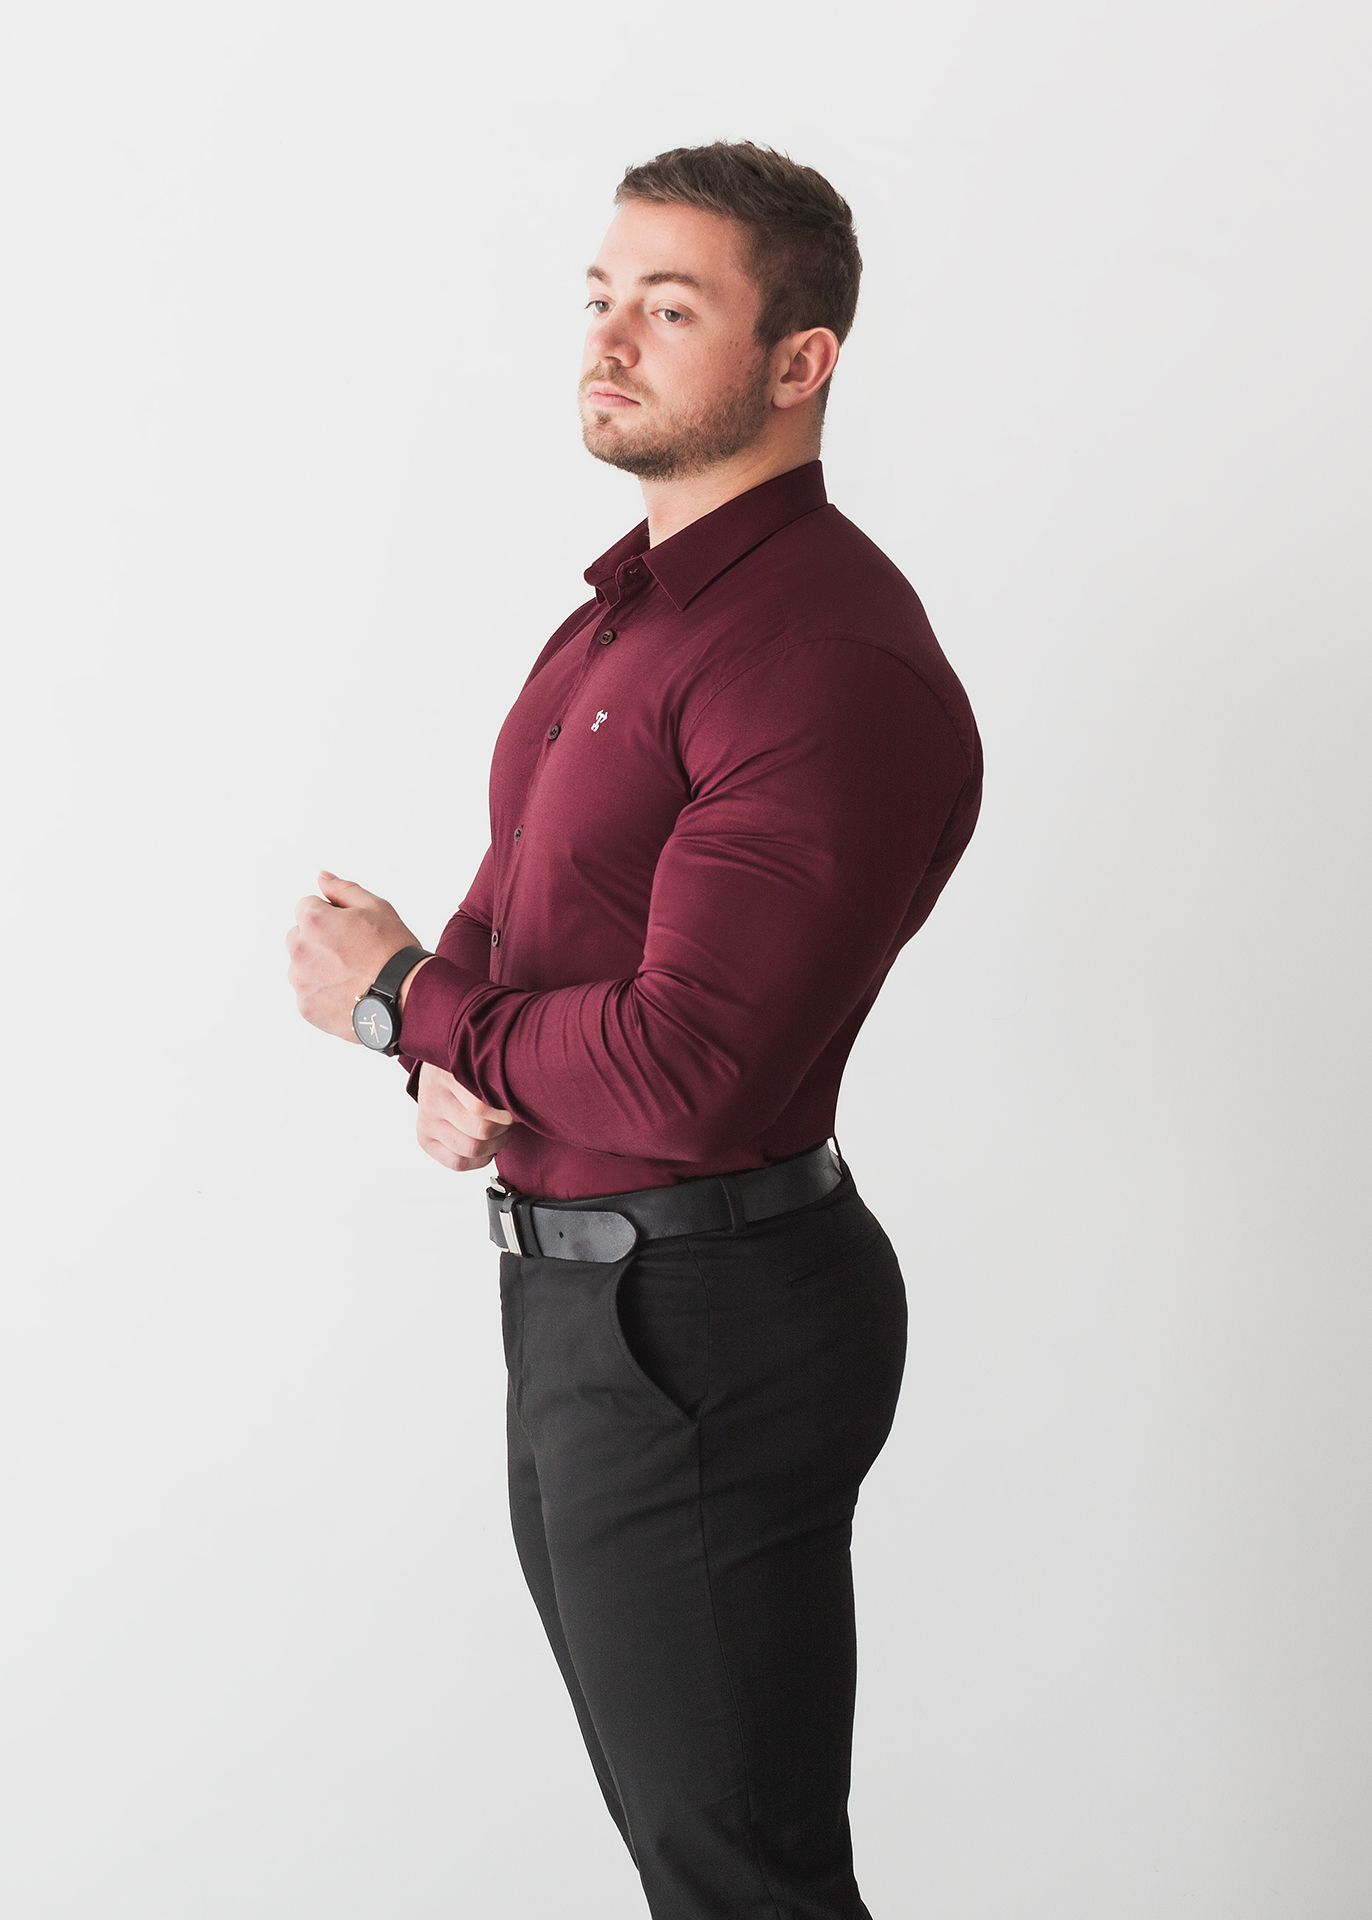 The first of our types of product photography to feature a model. This image shows a muscular male model in a tight-fitting red shirt. The shirt is designed for muscular men, and fits well. He stands at an angle against a white background.